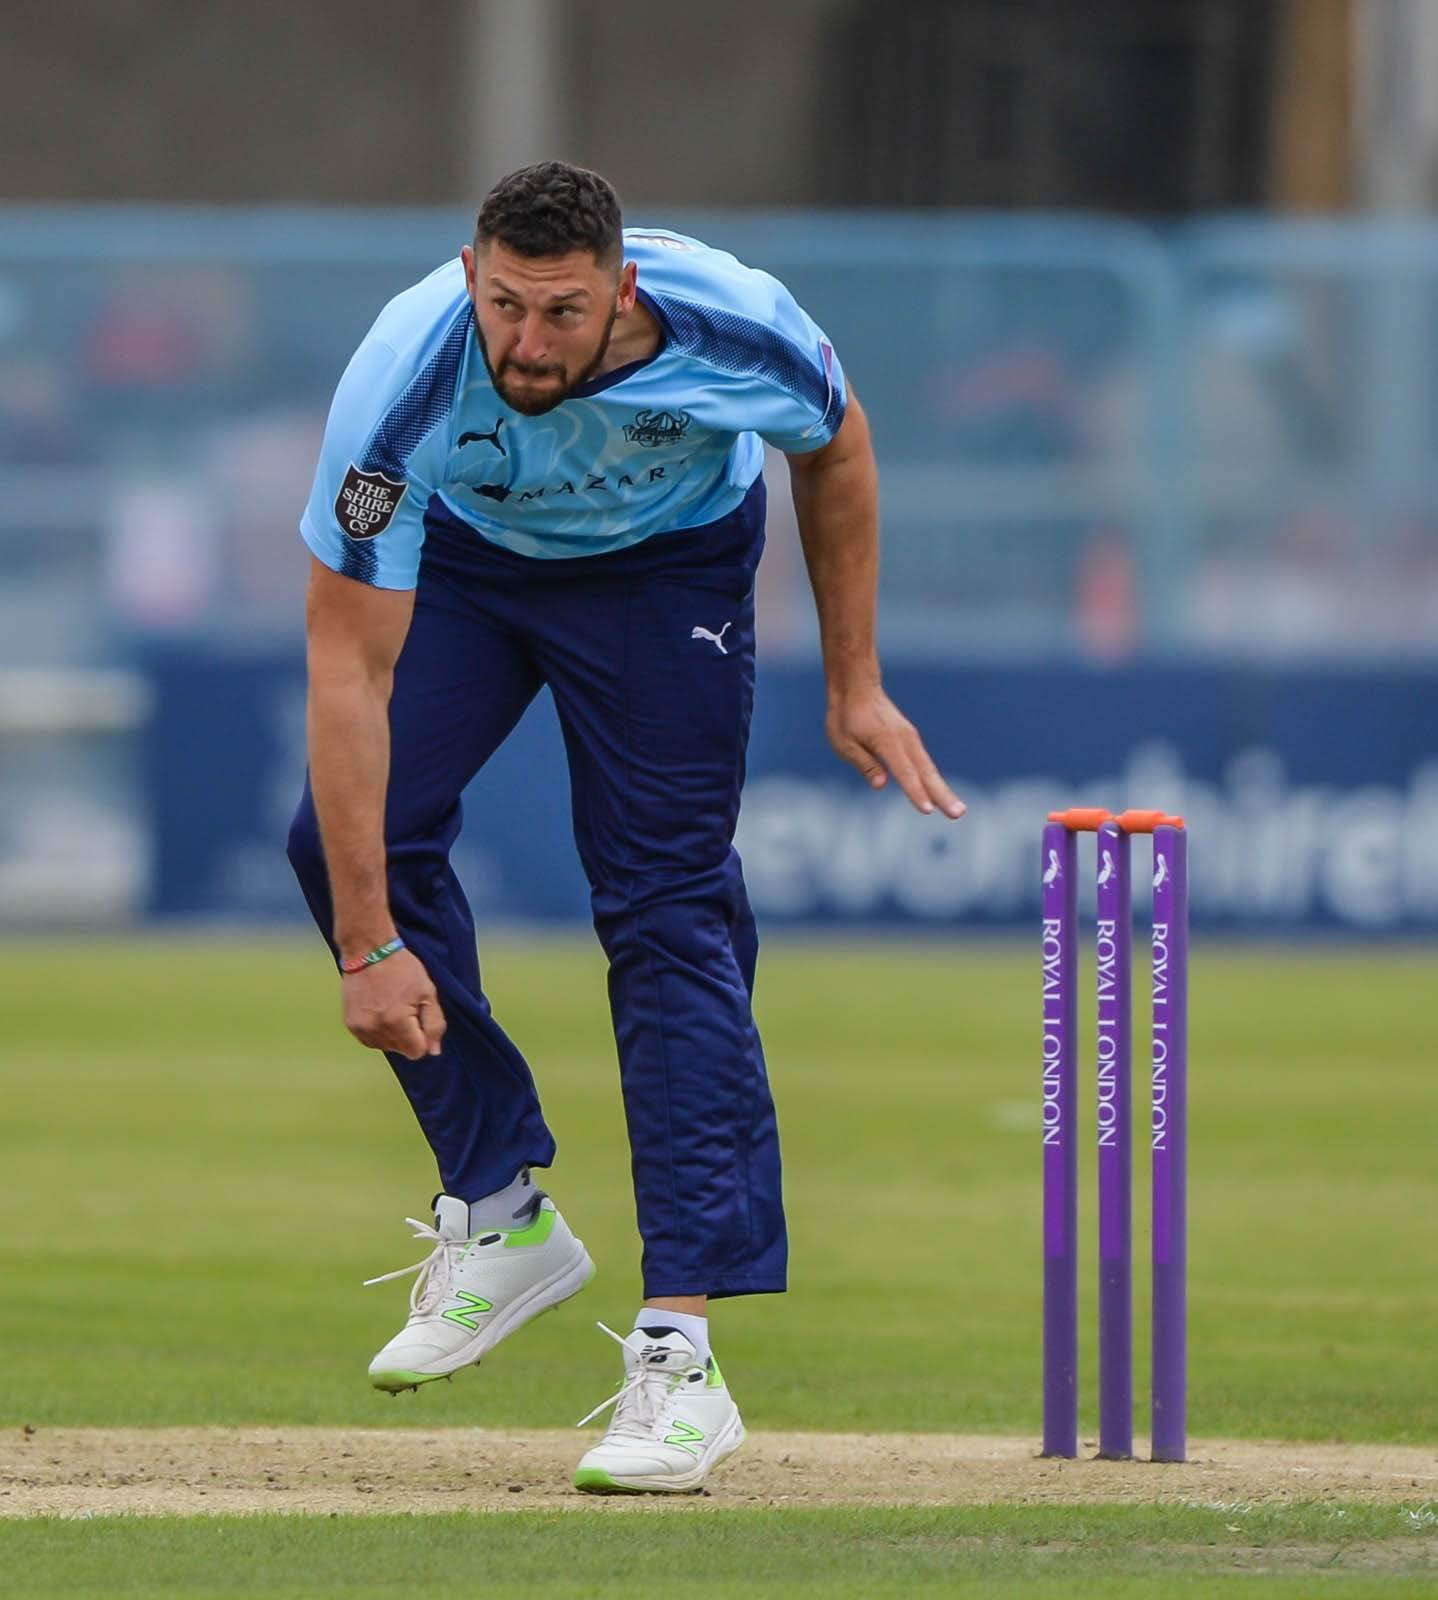 RATim Bresnan has extended his Yorkshire contract Picture: Ray Spencer